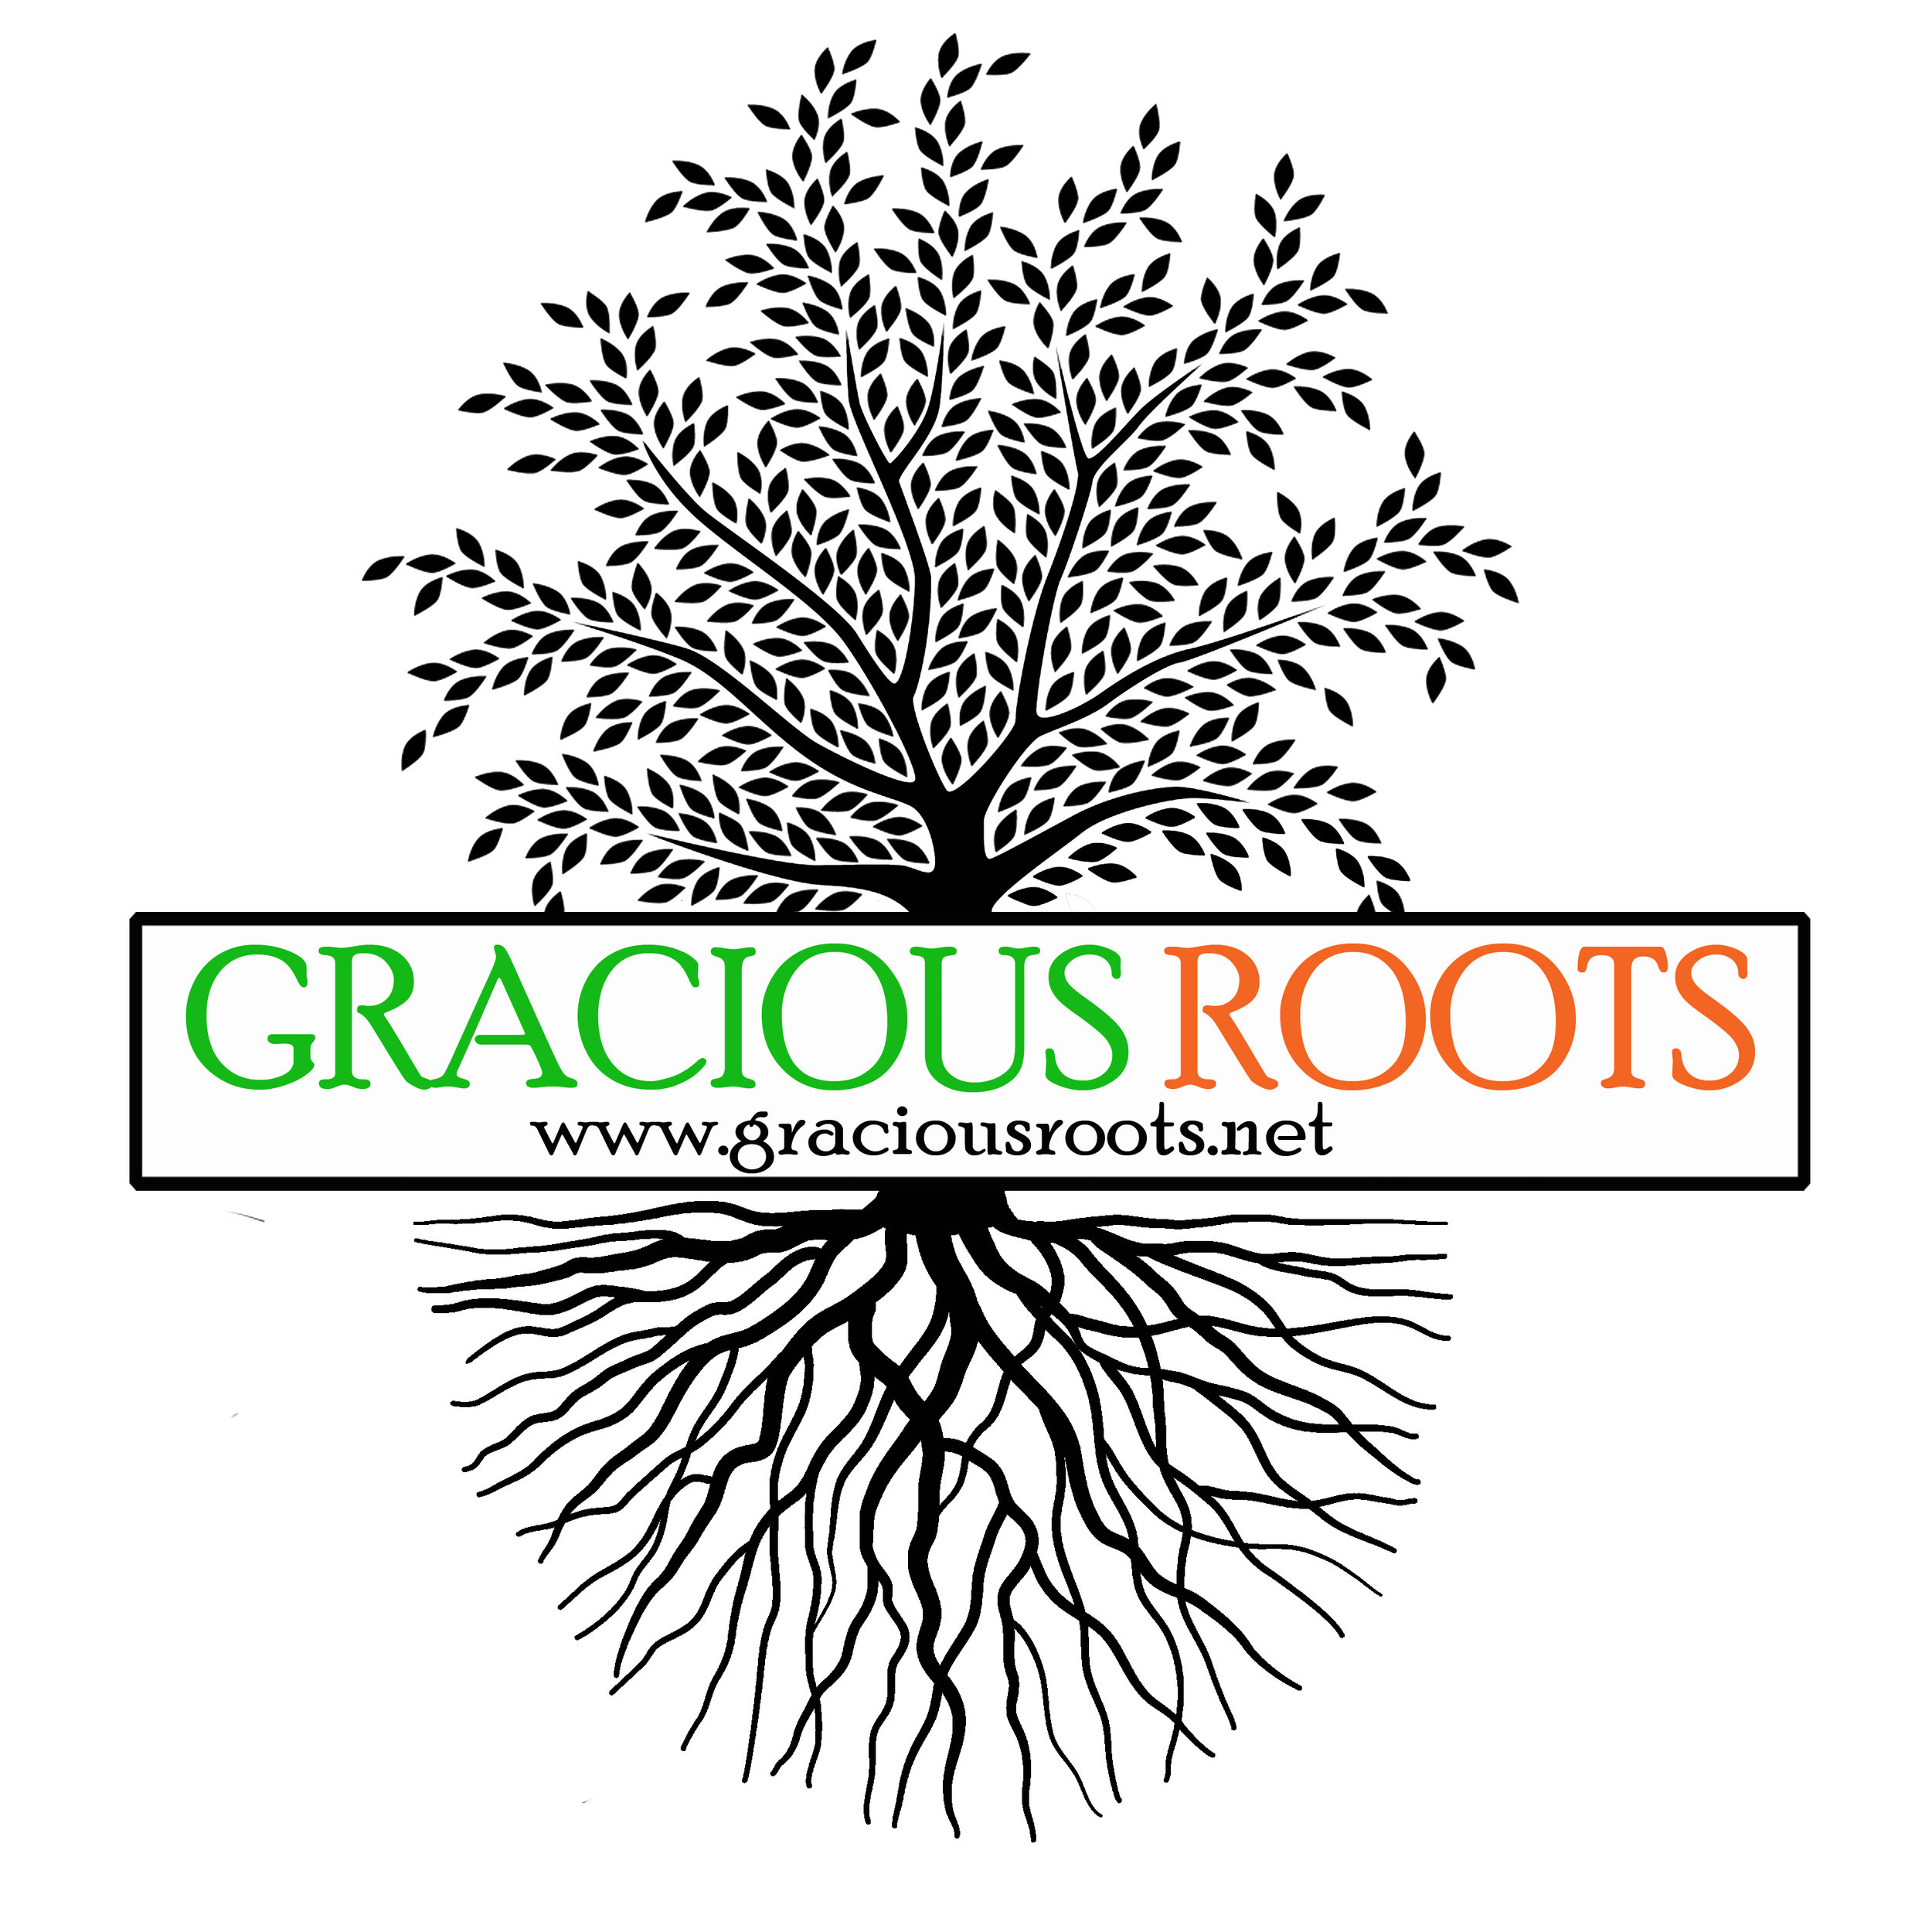 GET WILD! - With Gracious Roots in Floyd, Virginia this summer.